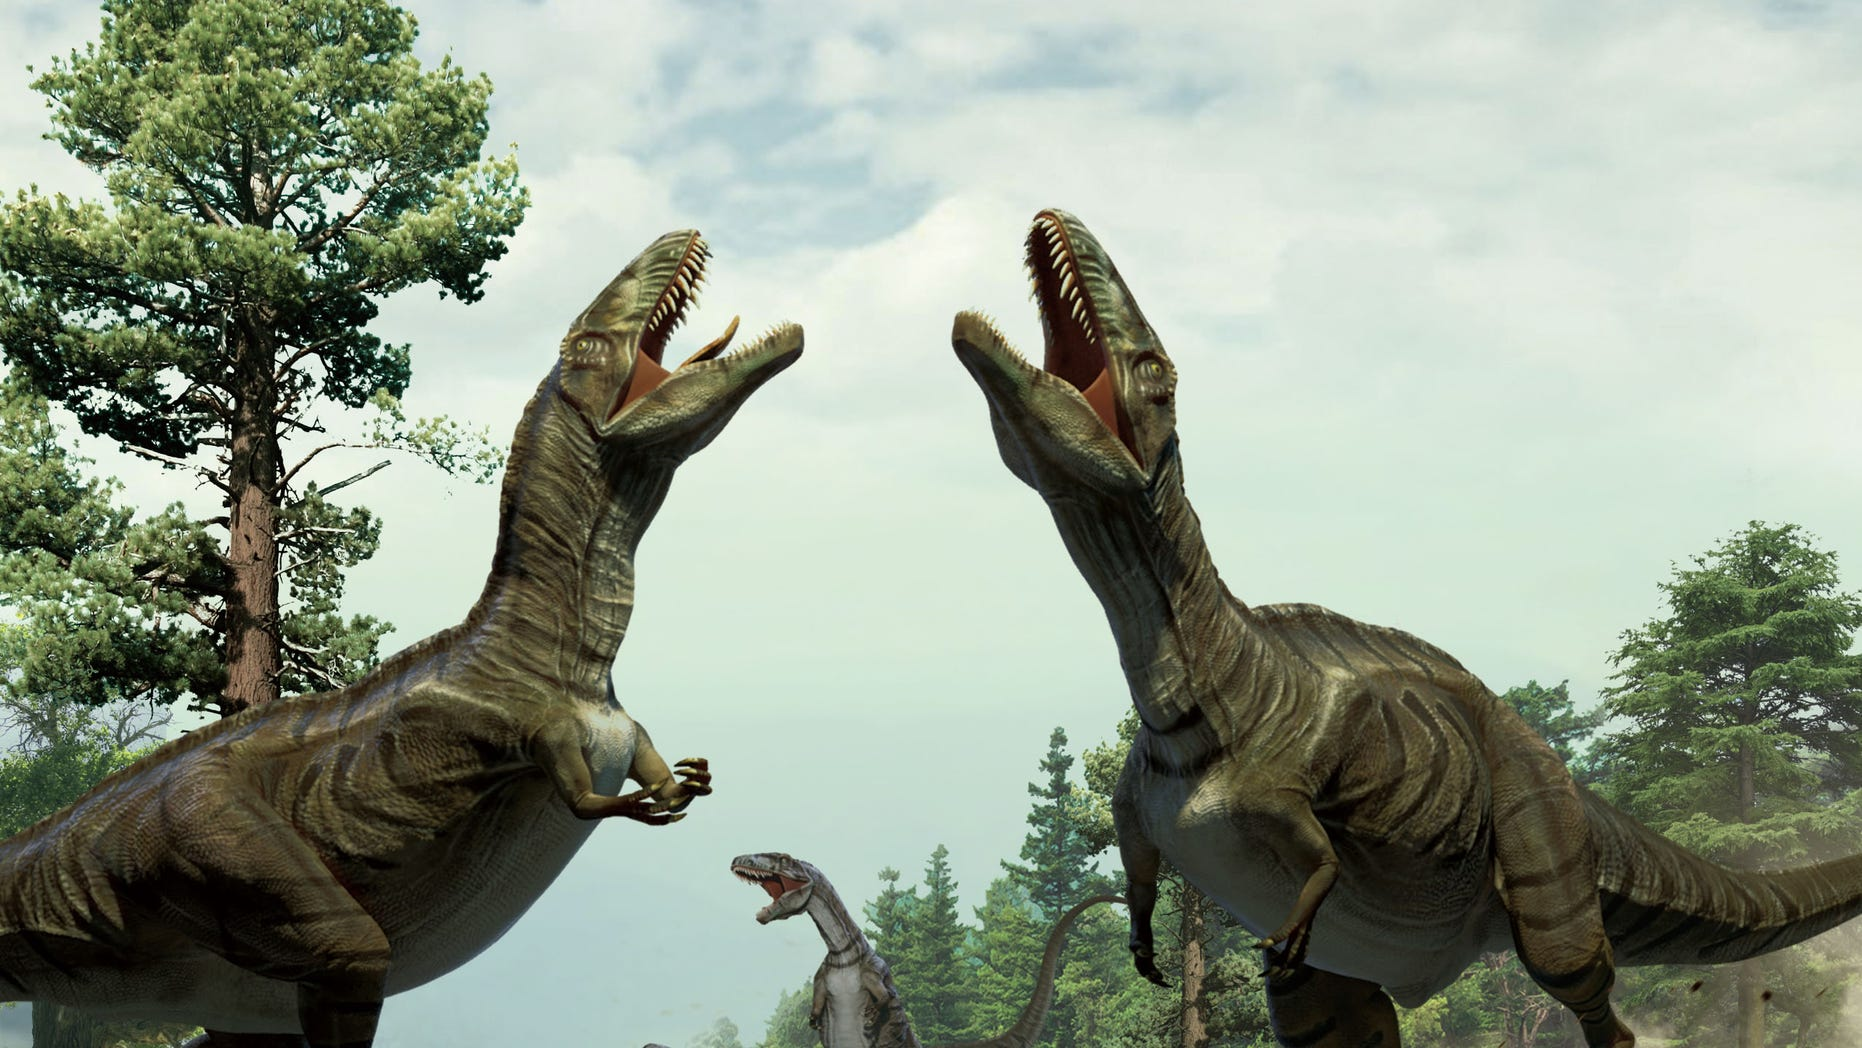 Reconstruction of theropods engaged in scrape ceremony display activity, based on trace fossil evidence from Colorado. (Xing Lida and Yujiang Han)